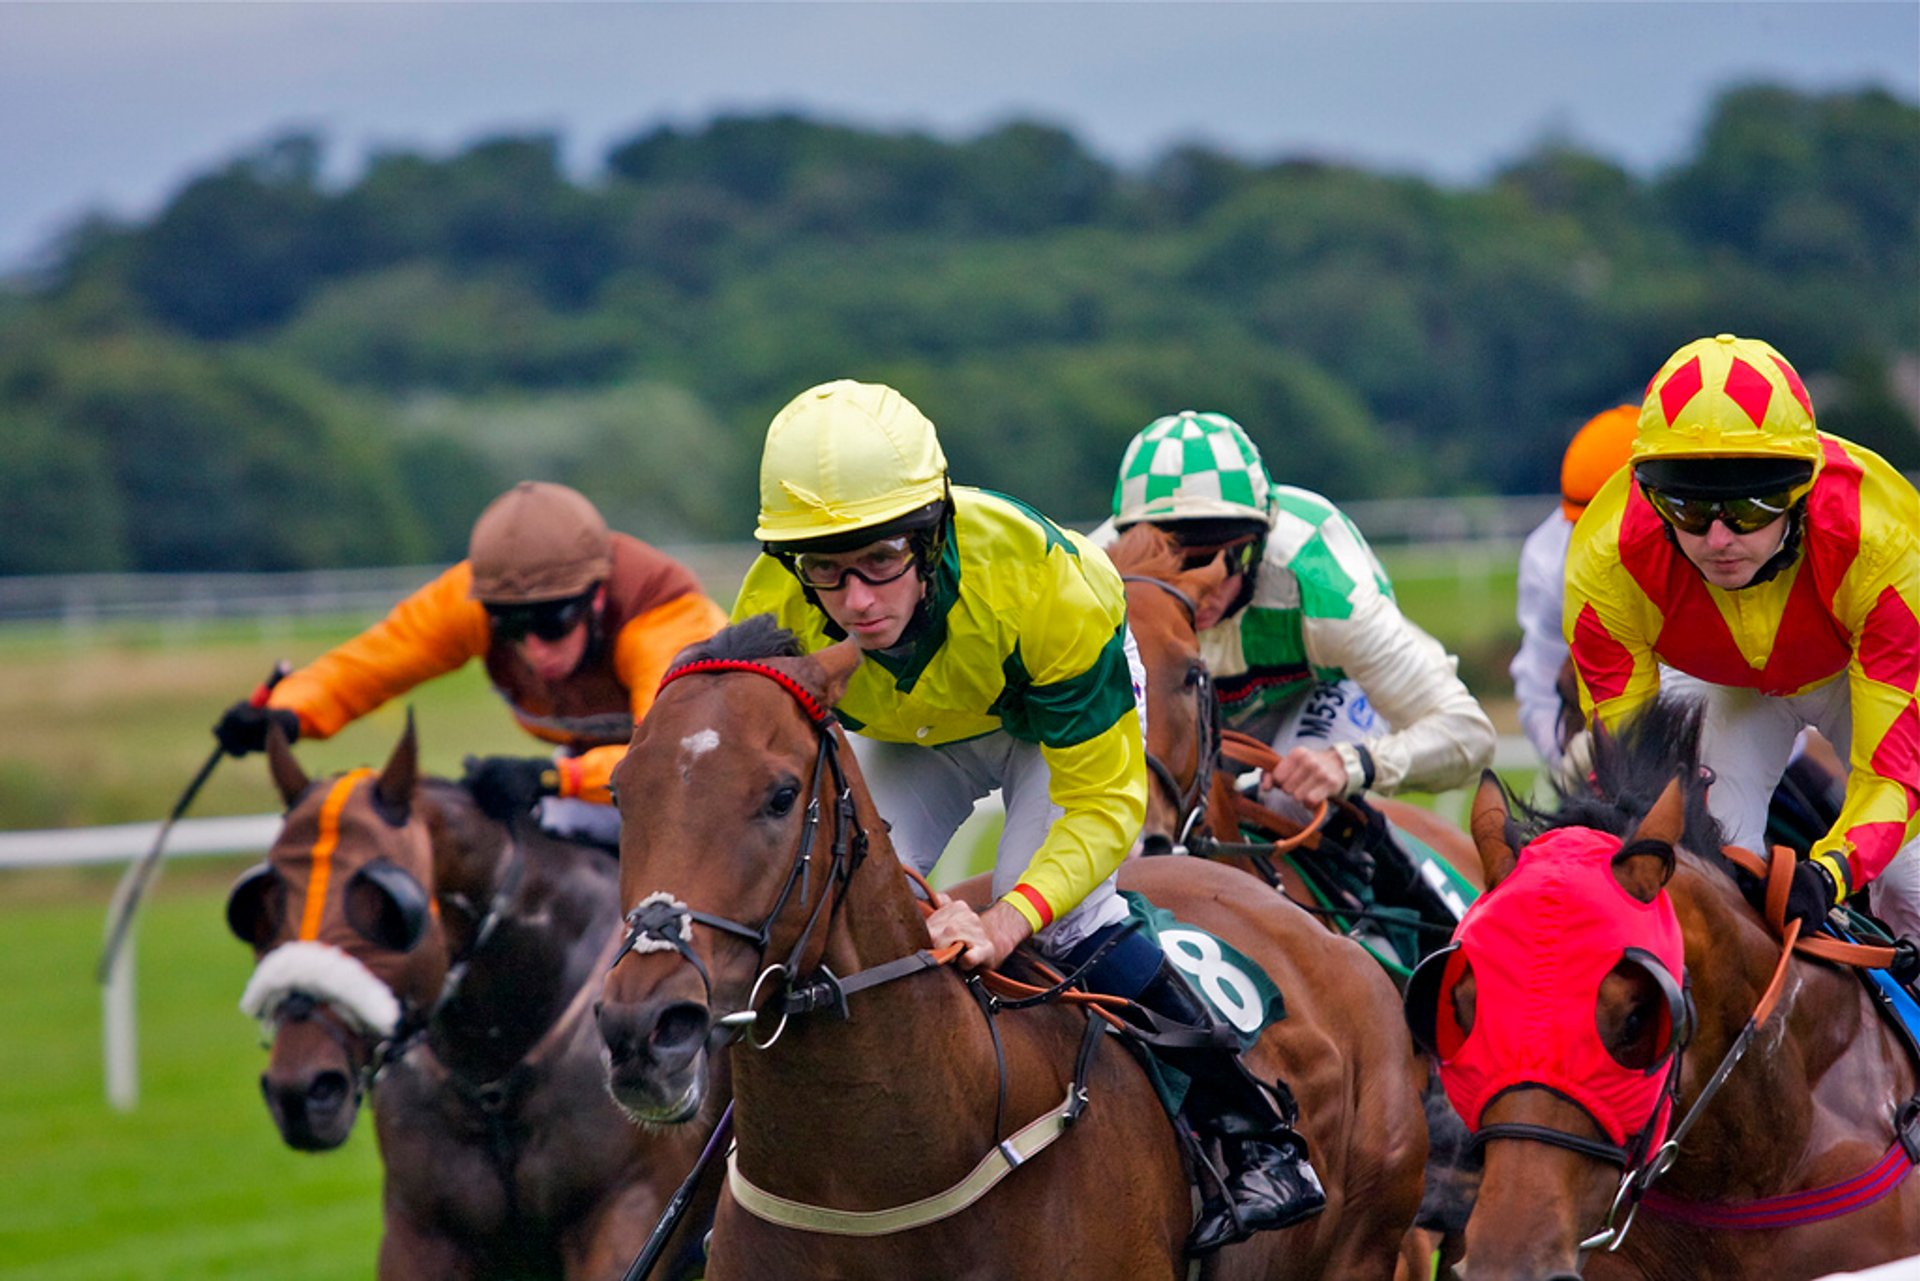 Horse Flat Racing Season in Edinburgh 2019 - Best Time